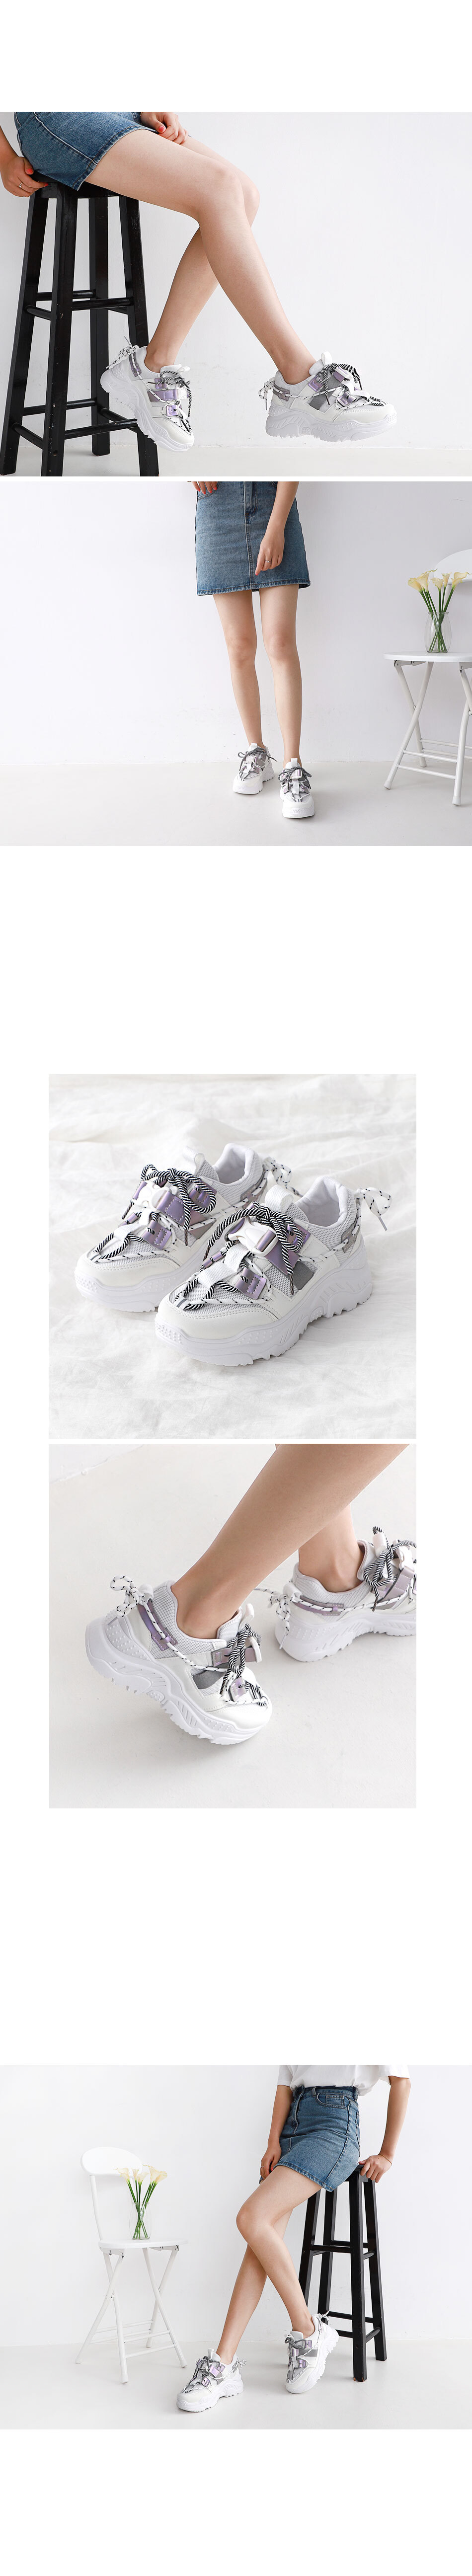 Isshu Buckle Rope Strap Full Heel Wedge Ugly Shoes Sneakers 10714 ♡ First Edition ♡